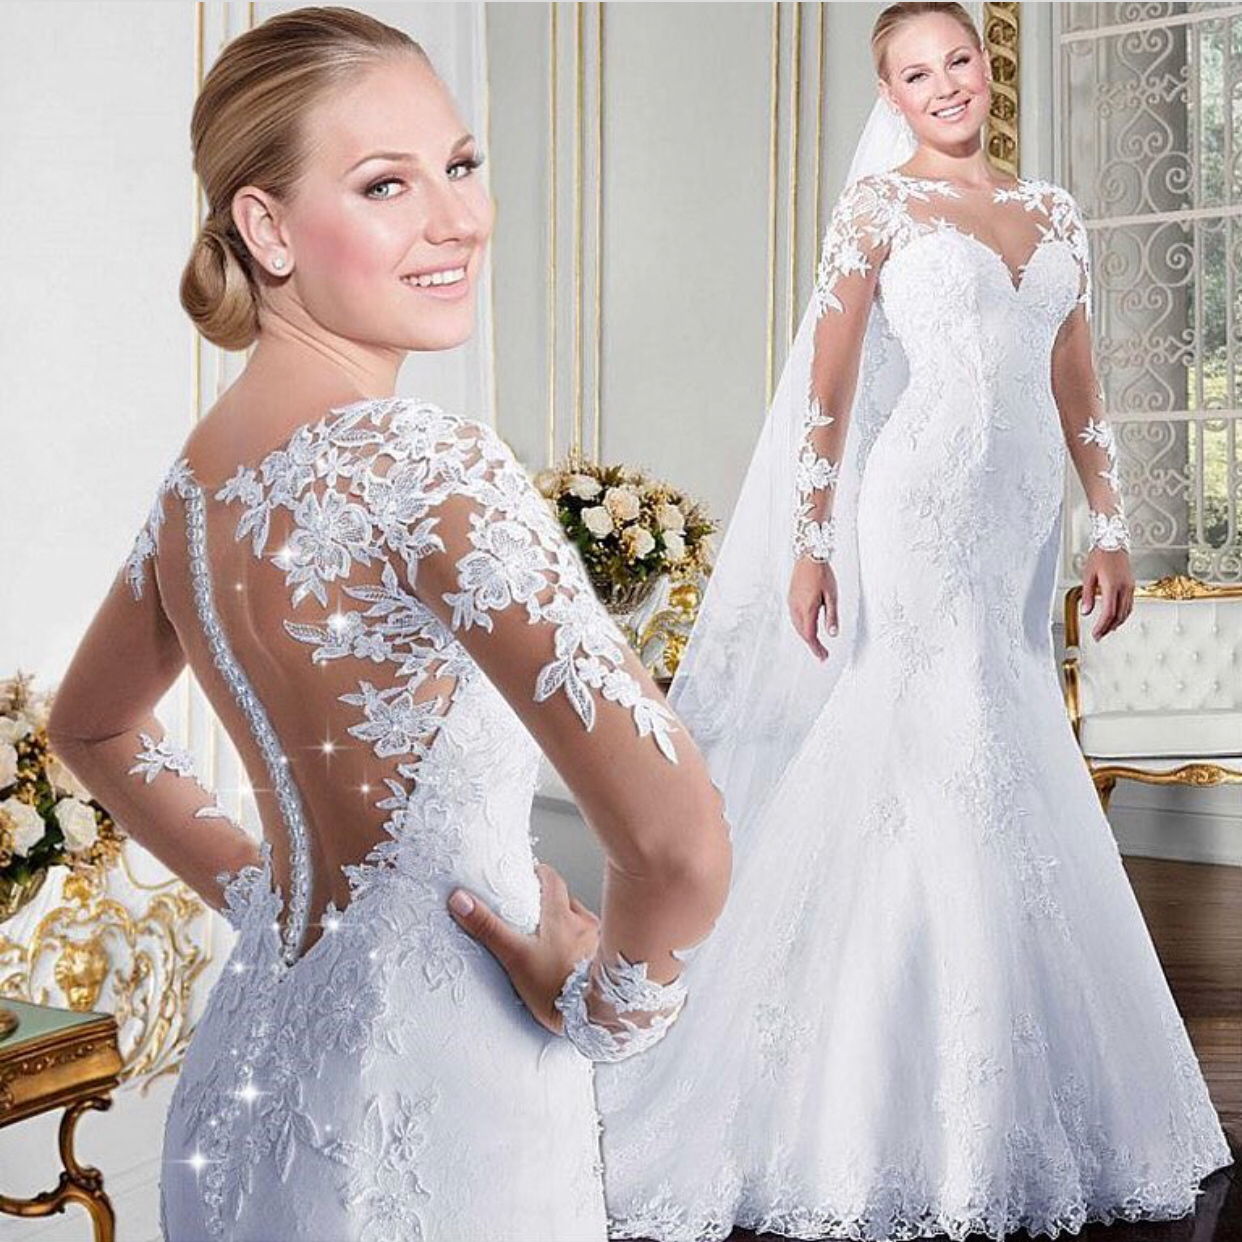 Long Sleeve Wedding Dress Mermaid Elegant Lace Lique Dresses 2018 Custom Make